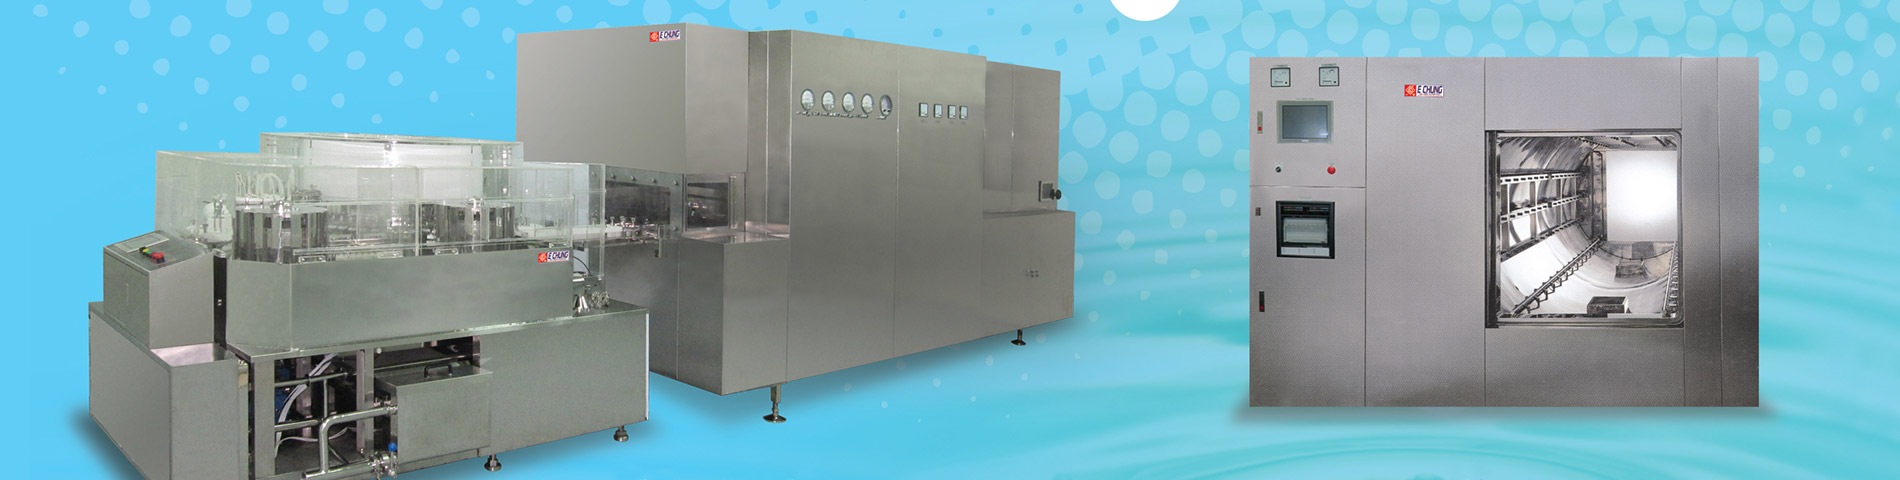 Fully Auto. LVP / Injection / Oral Liquid Manufacturing Equipment